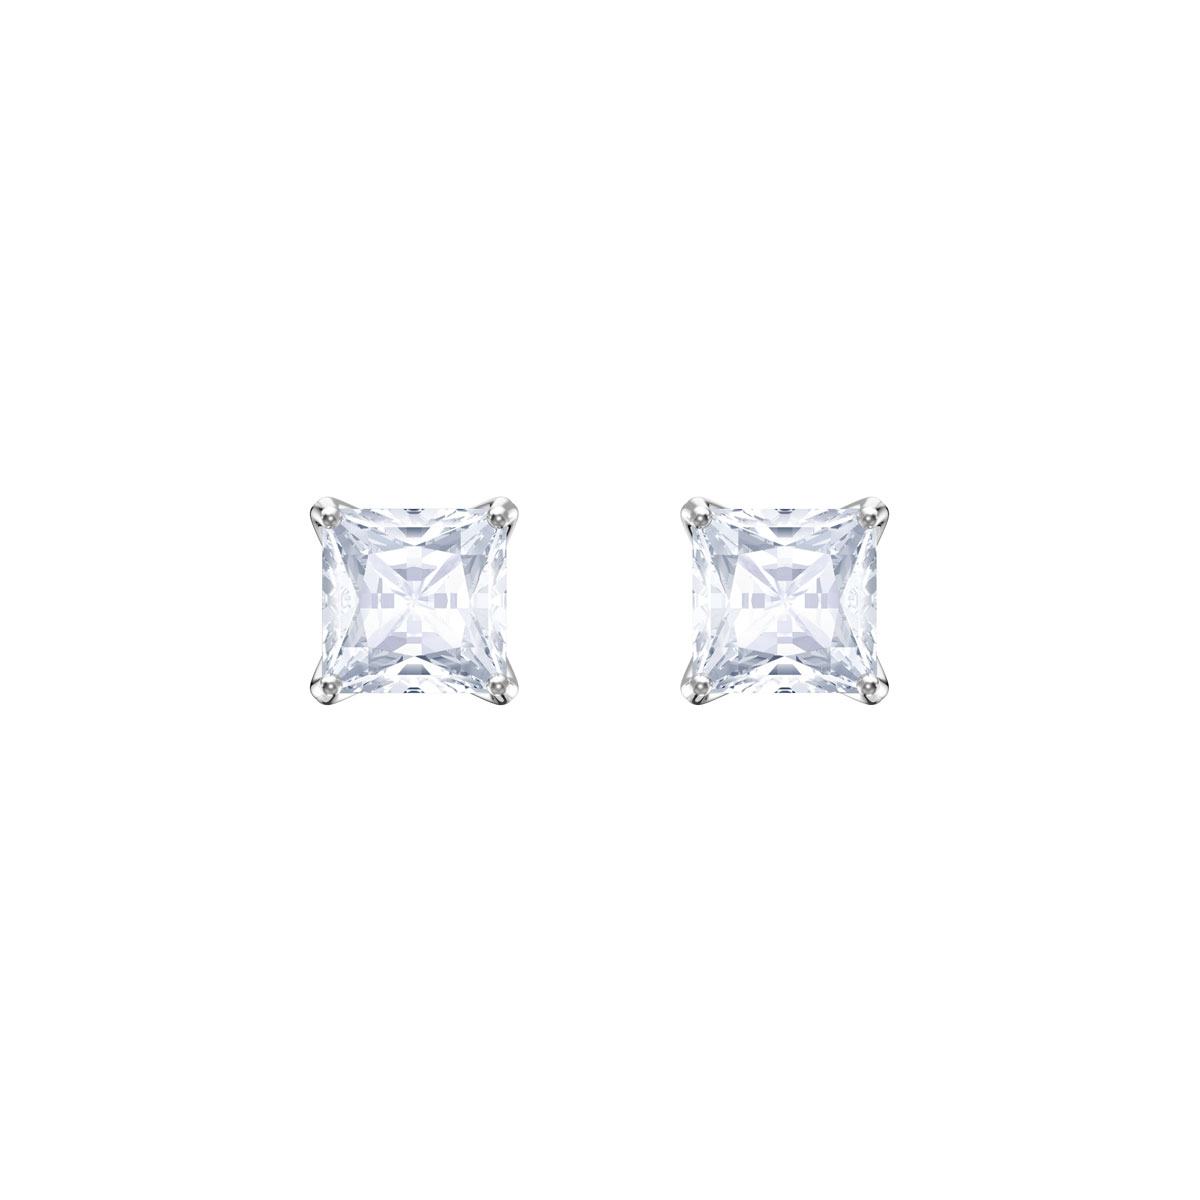 Swarovski Attract Stud Pierced Earrings, White, Rhodium